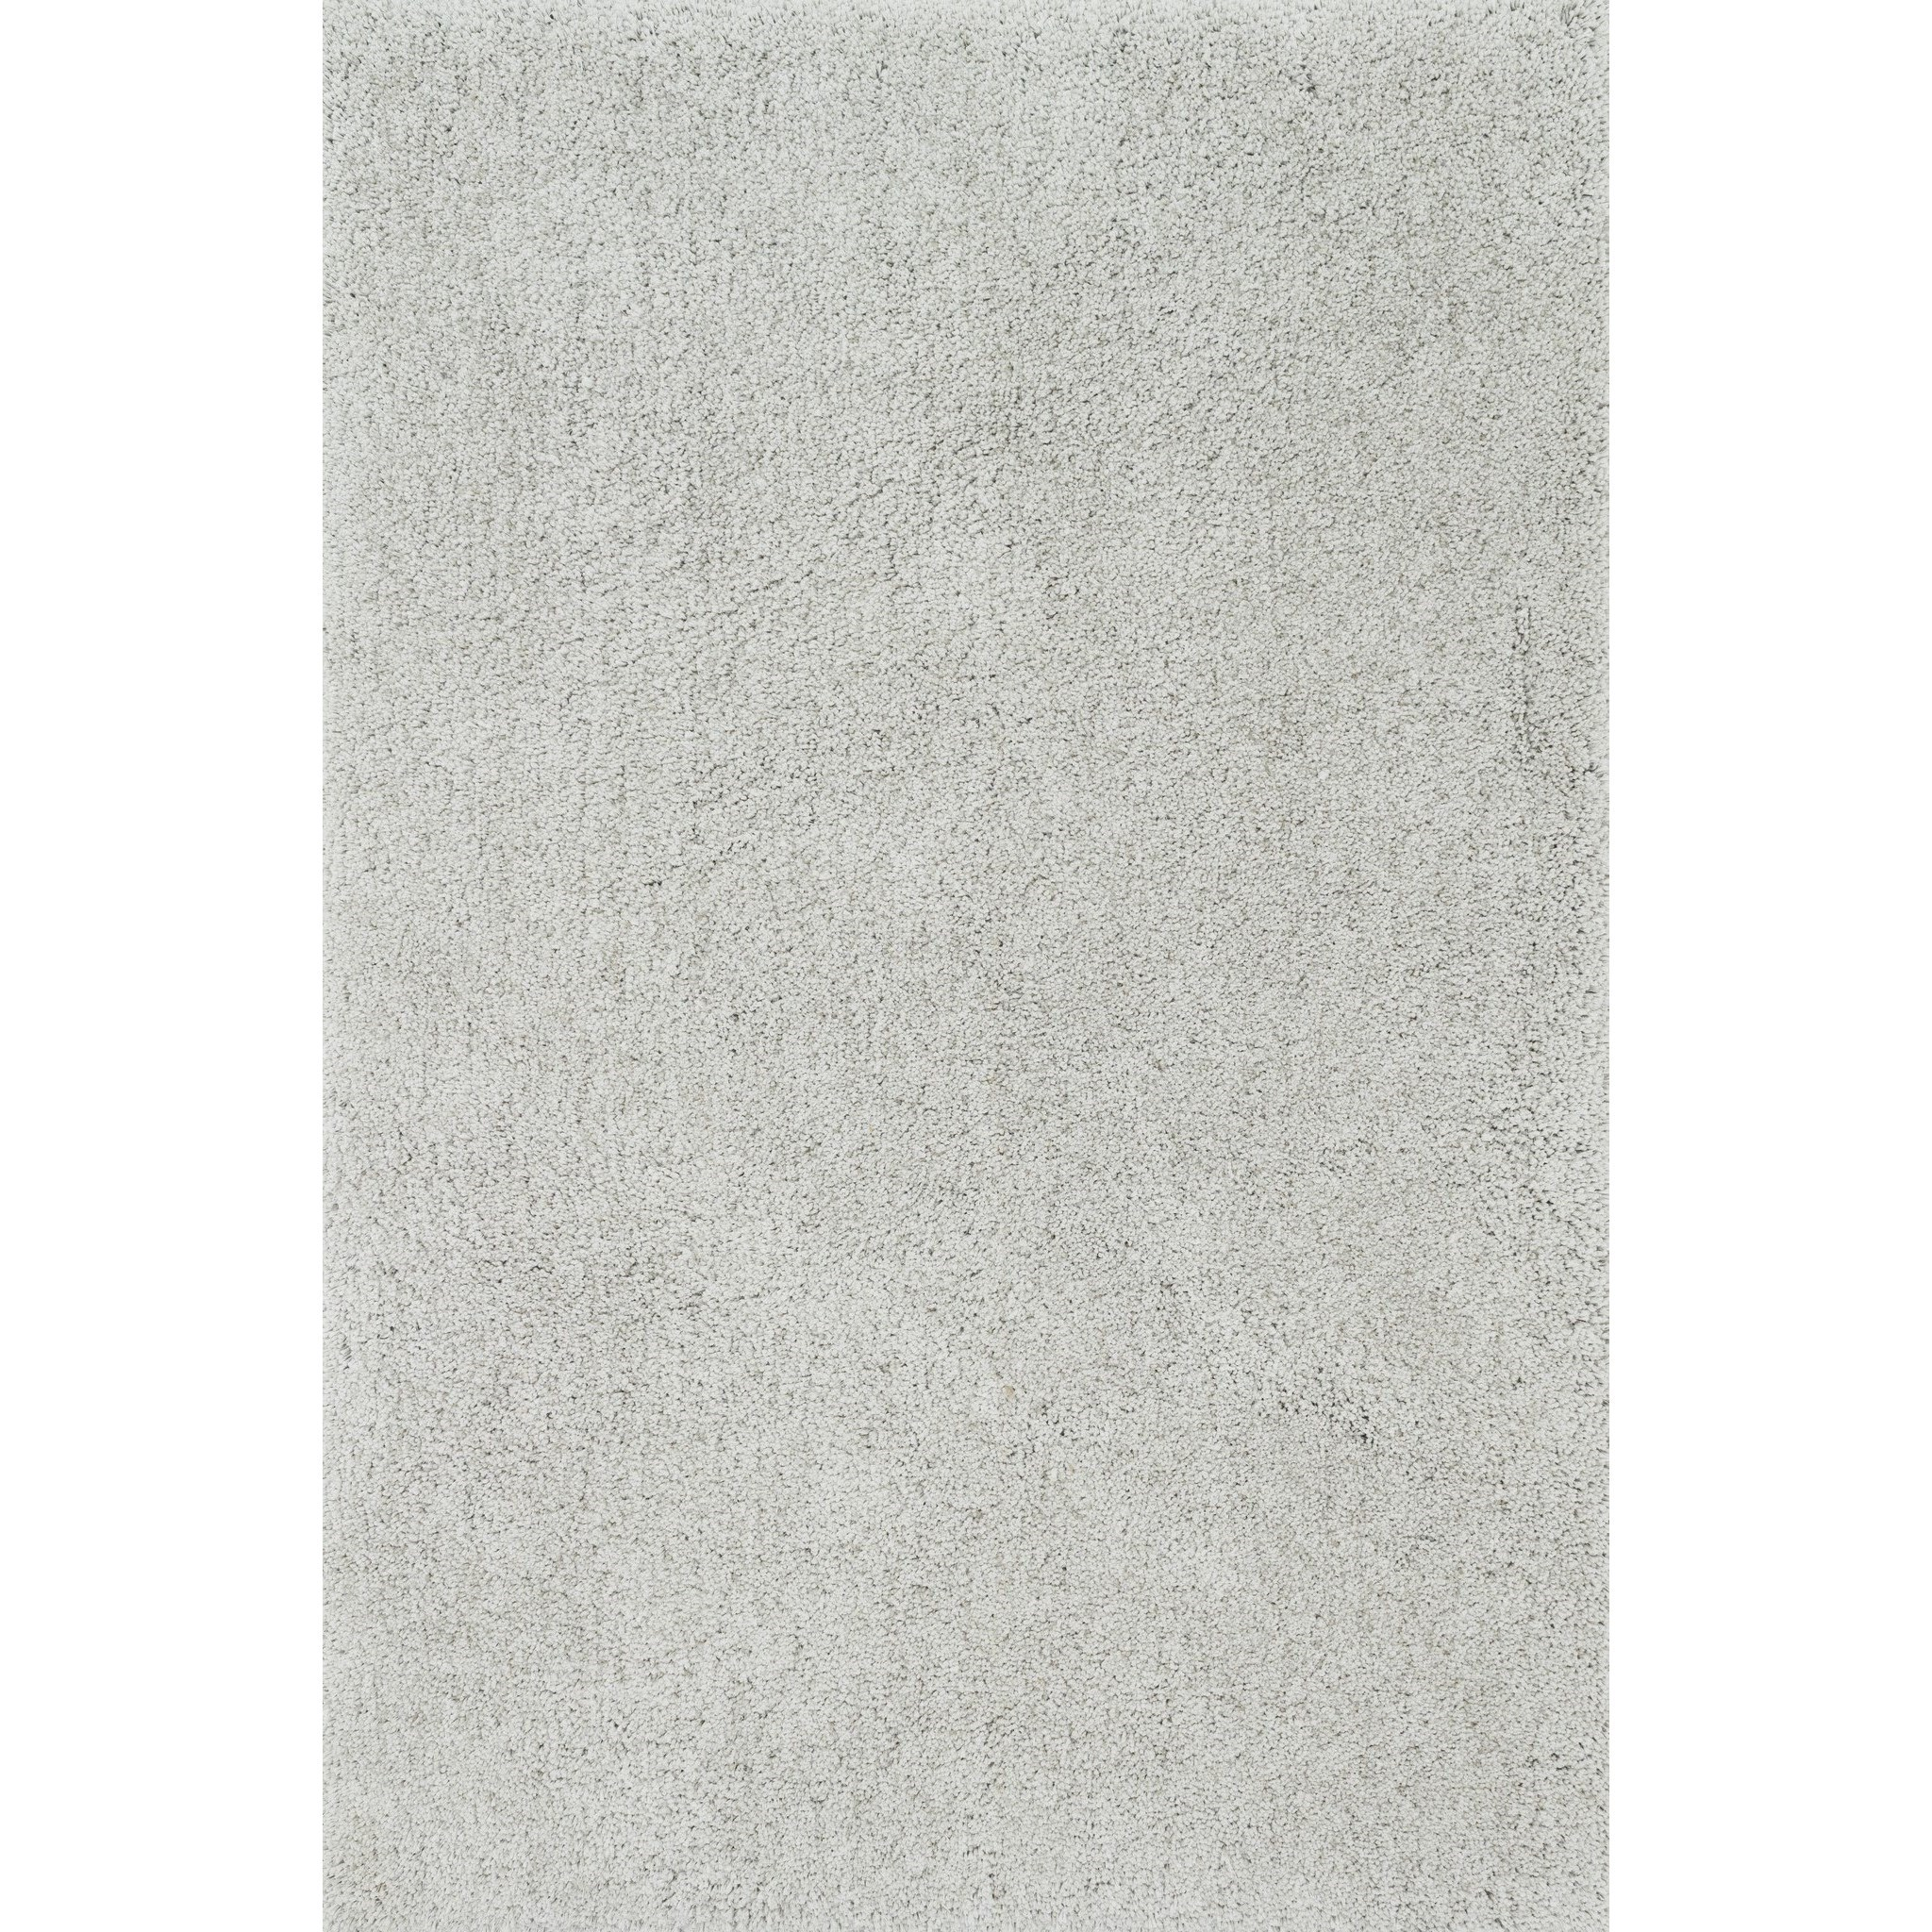 "Cozy Shag 5'-0"" x 7'-6"" Area Rug by Loloi Rugs at Sprintz Furniture"